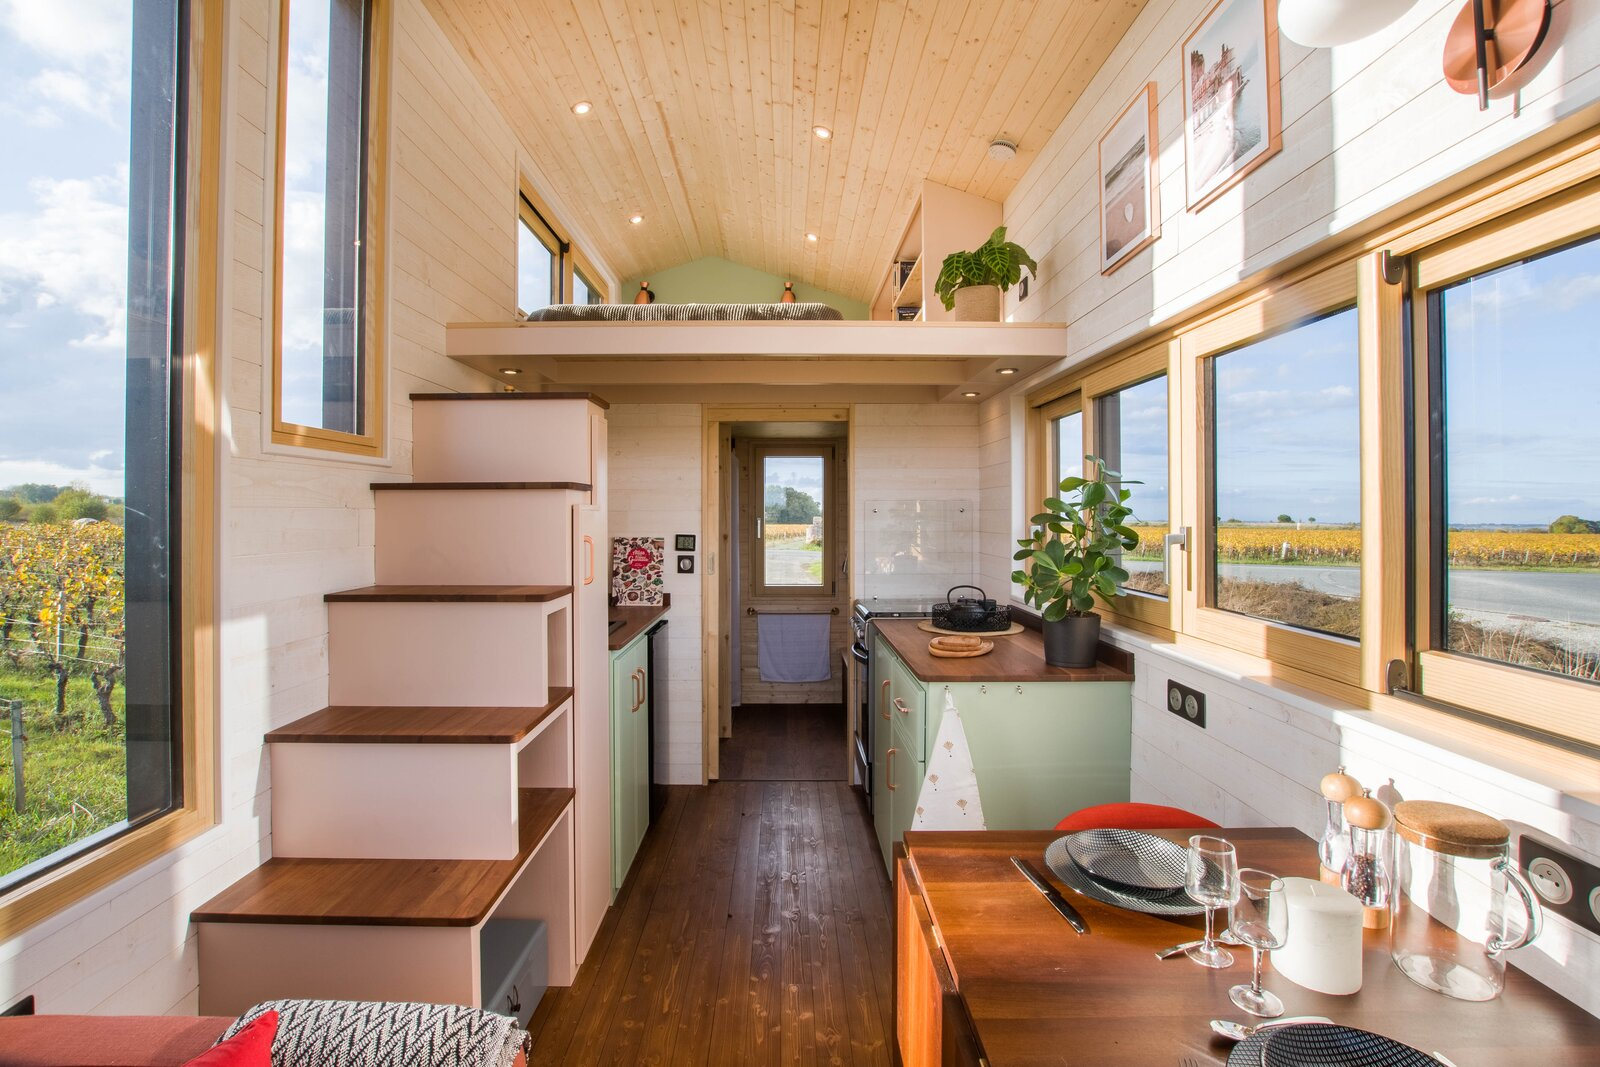 Ala Köl by Baluchon interior with dining space and stairs to sleeping loft